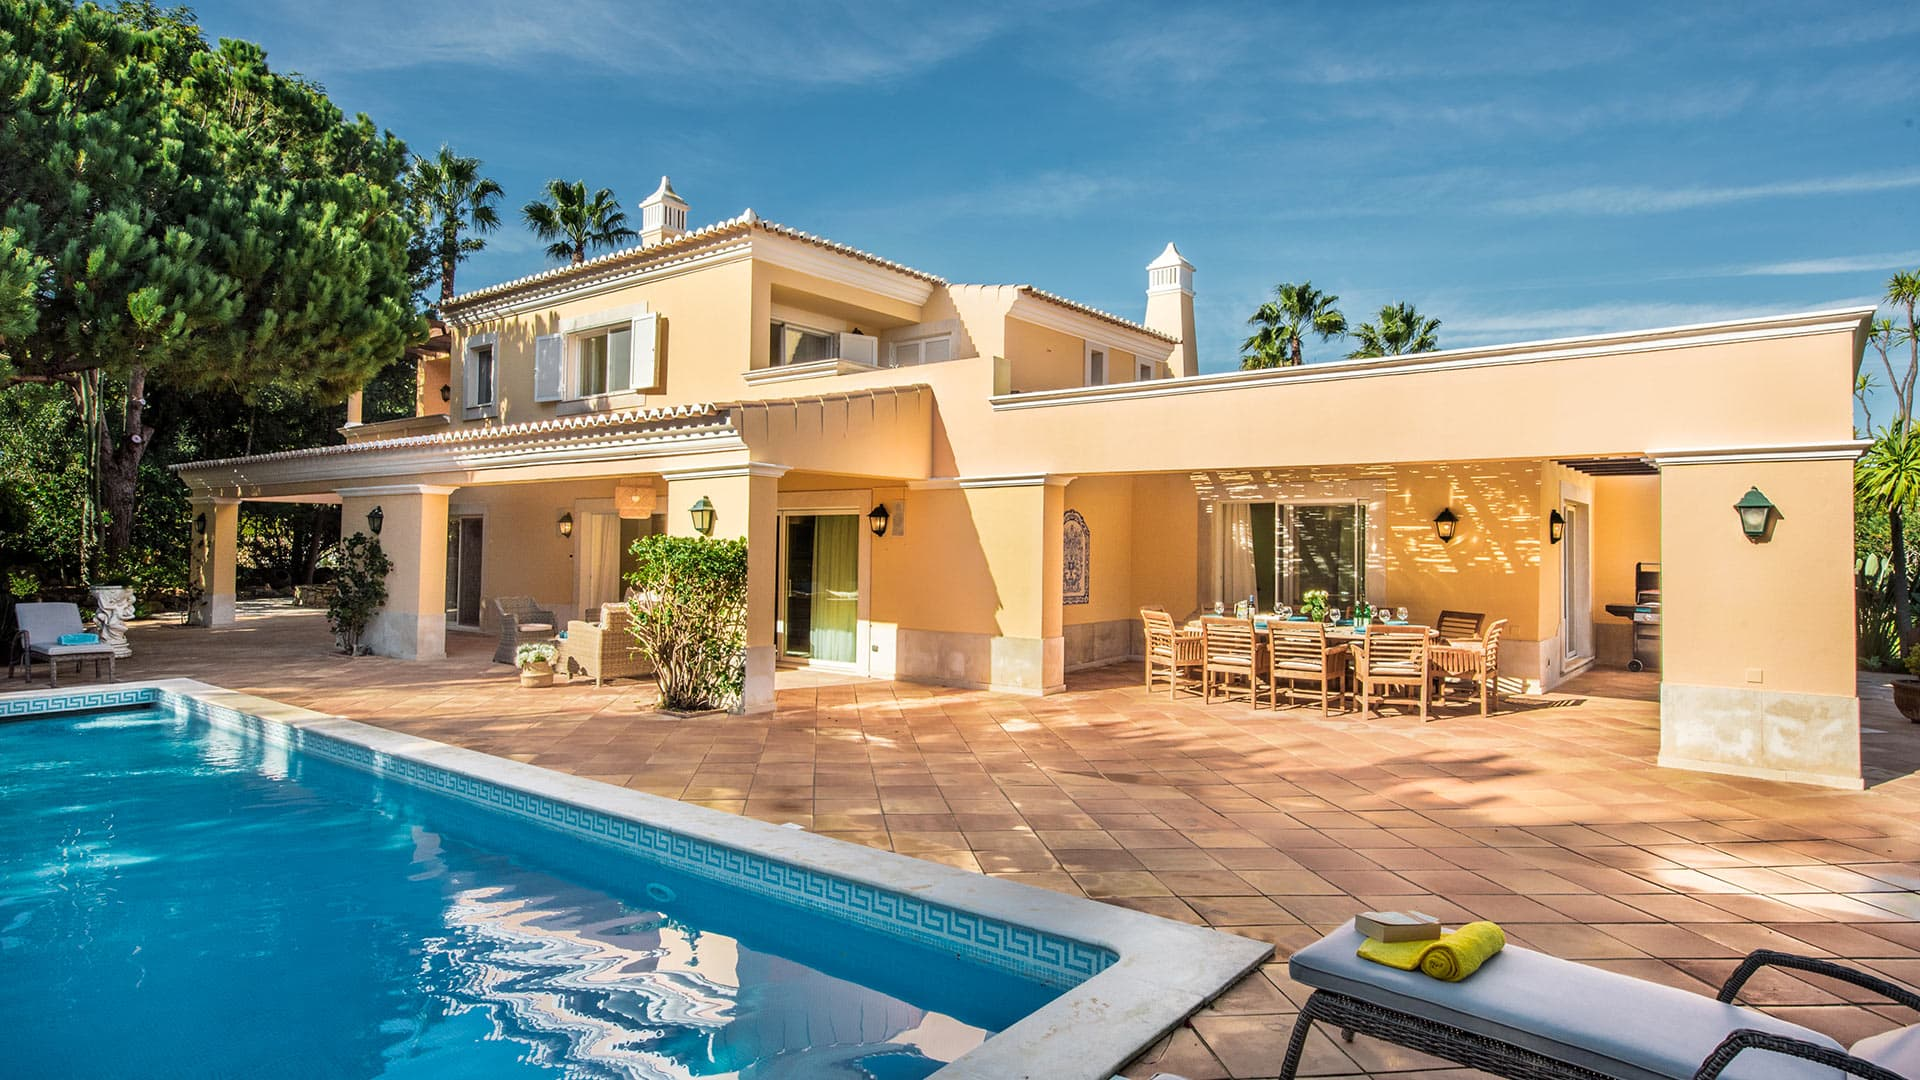 Villa Villa Paci, Rental in Algarve